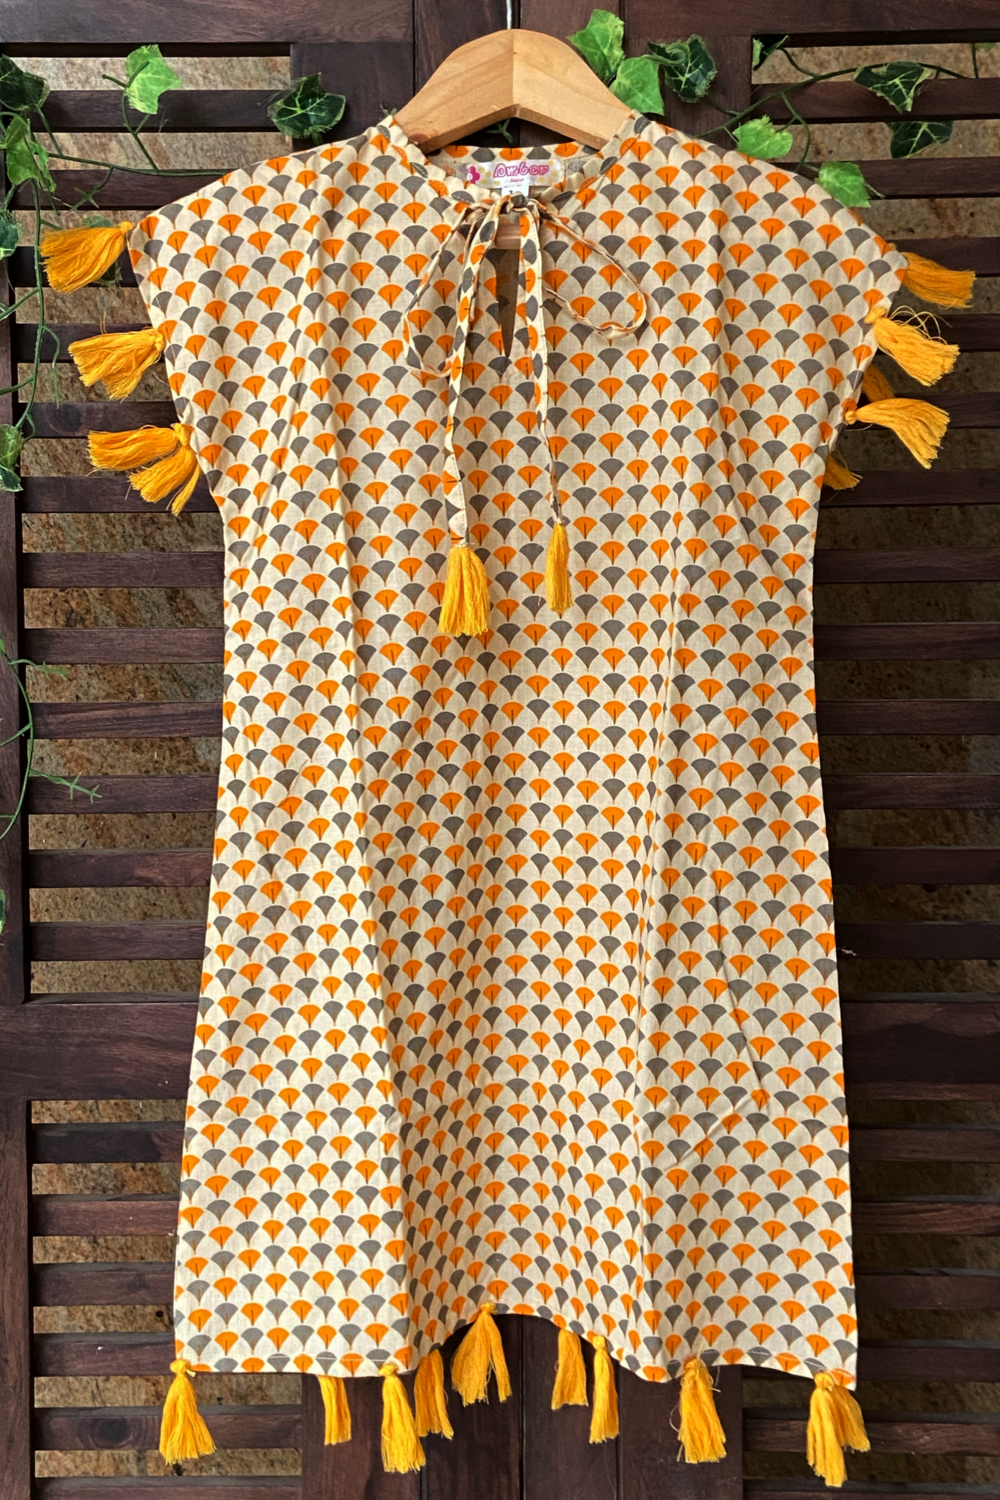 kidswear - orange dress with orange tassels